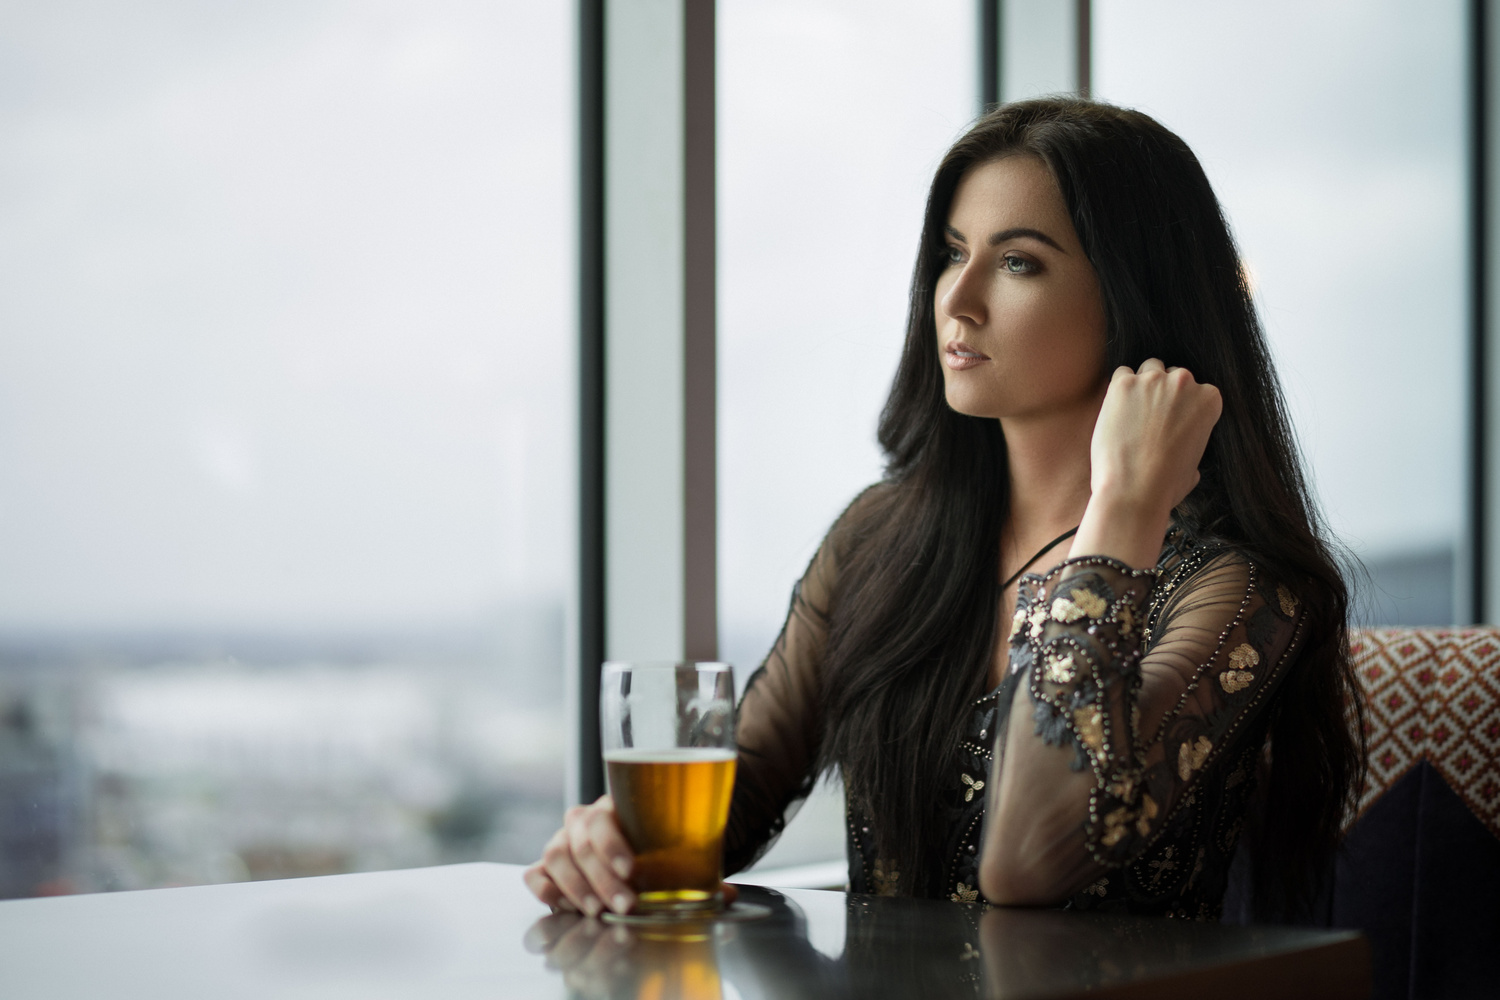 Just a girl and her beer by Jeff Carpenter